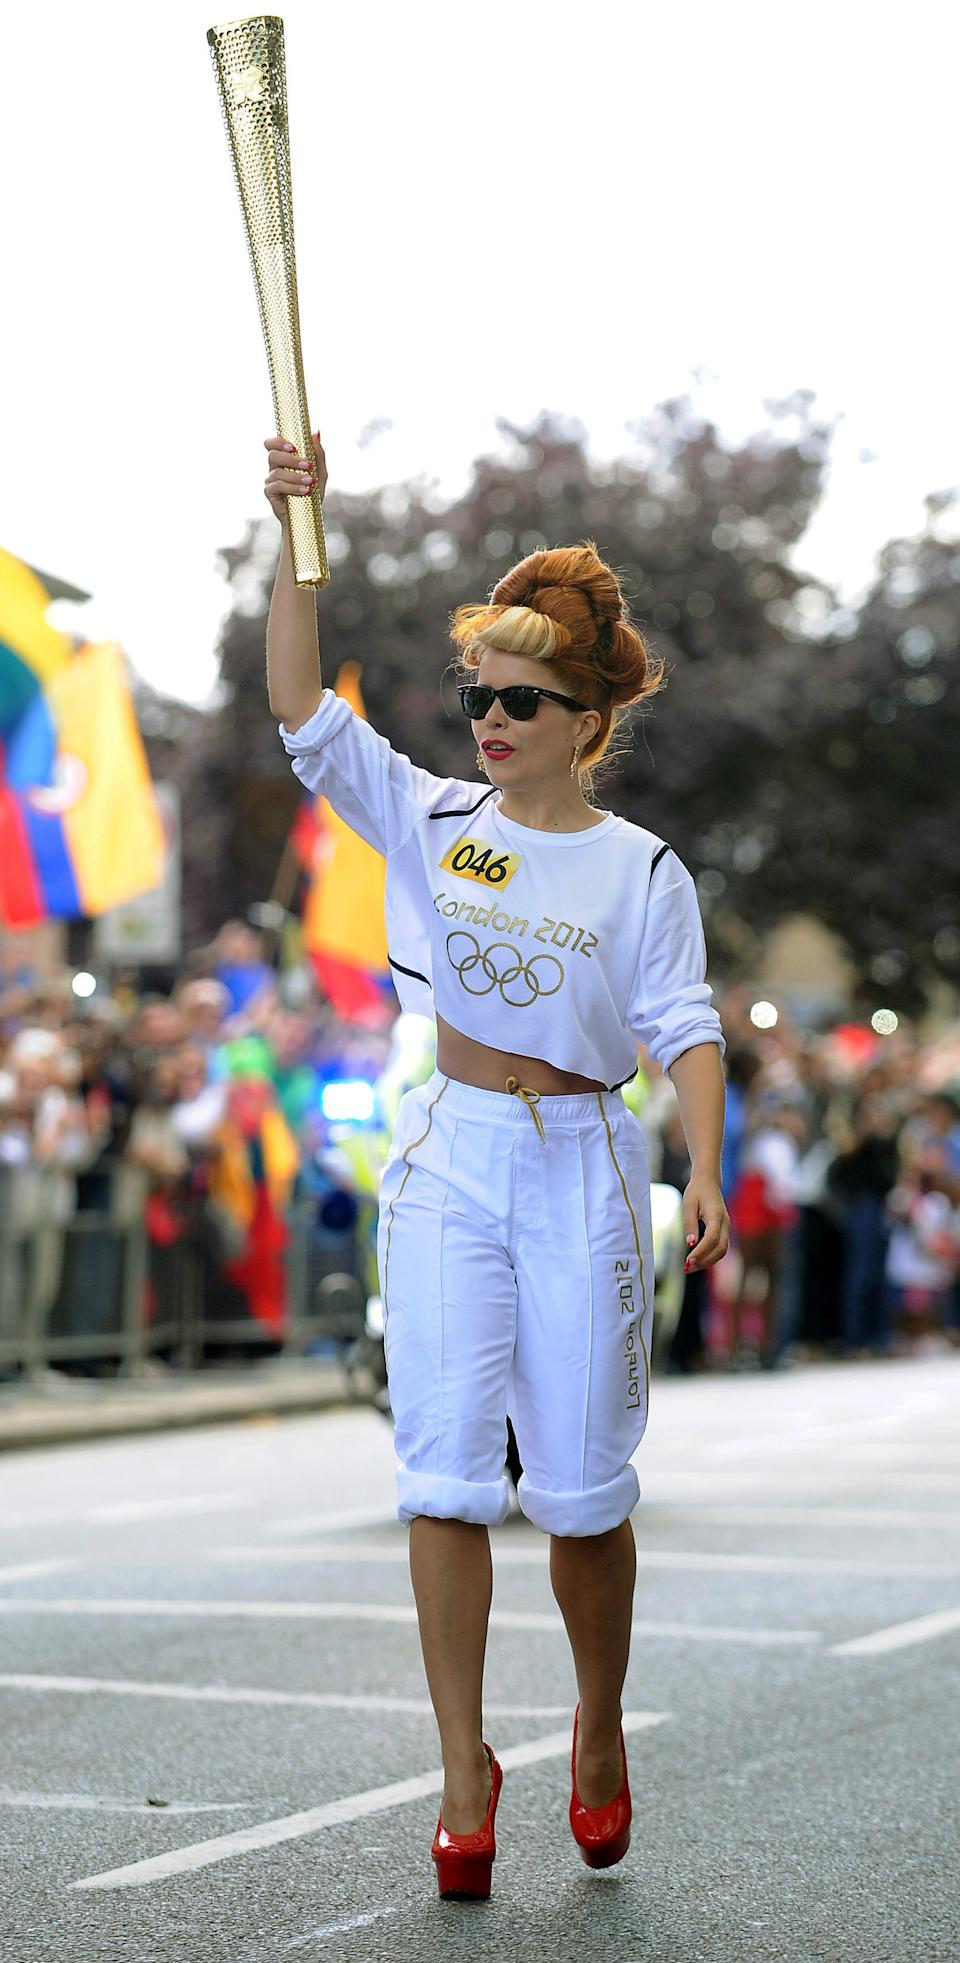 In this Saturday, July 21, 2012,  photo provided by LOCOG, singer Paloma Faith carries the Olympic Flame on the Torch Relay leg through London. The opening ceremonies of the Olympic Games are scheduled for Friday, July 27. (AP Photo/LOCOG, Joe Giddens)